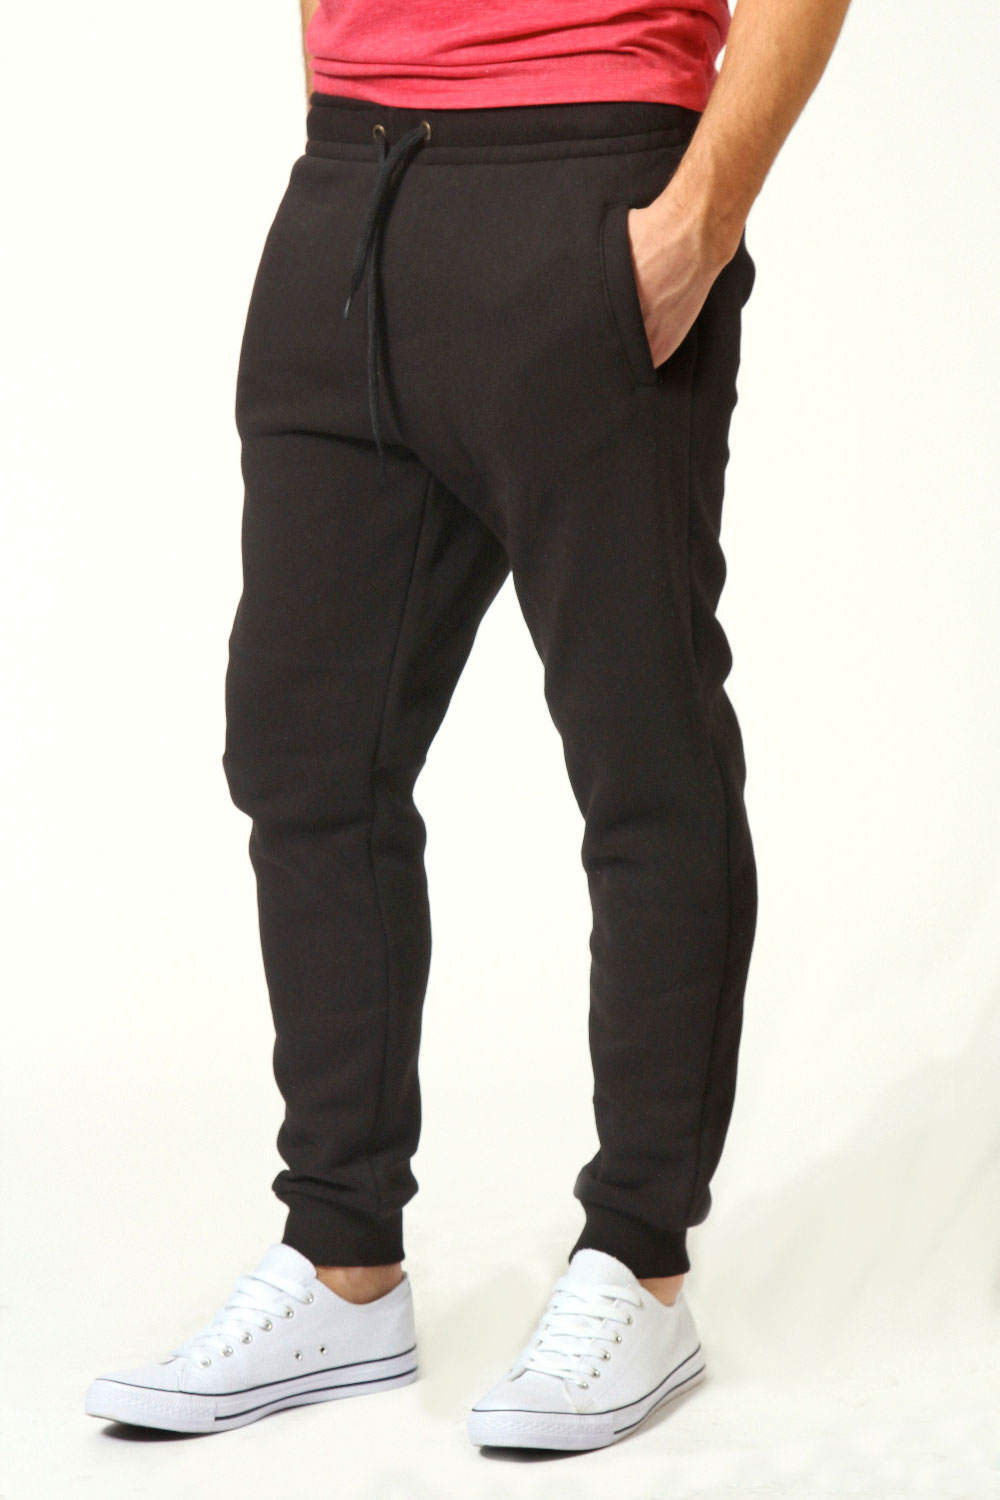 Shop for black joggers mens online at Target. Free shipping on purchases over $35 and save 5% every day with your Target REDcard.